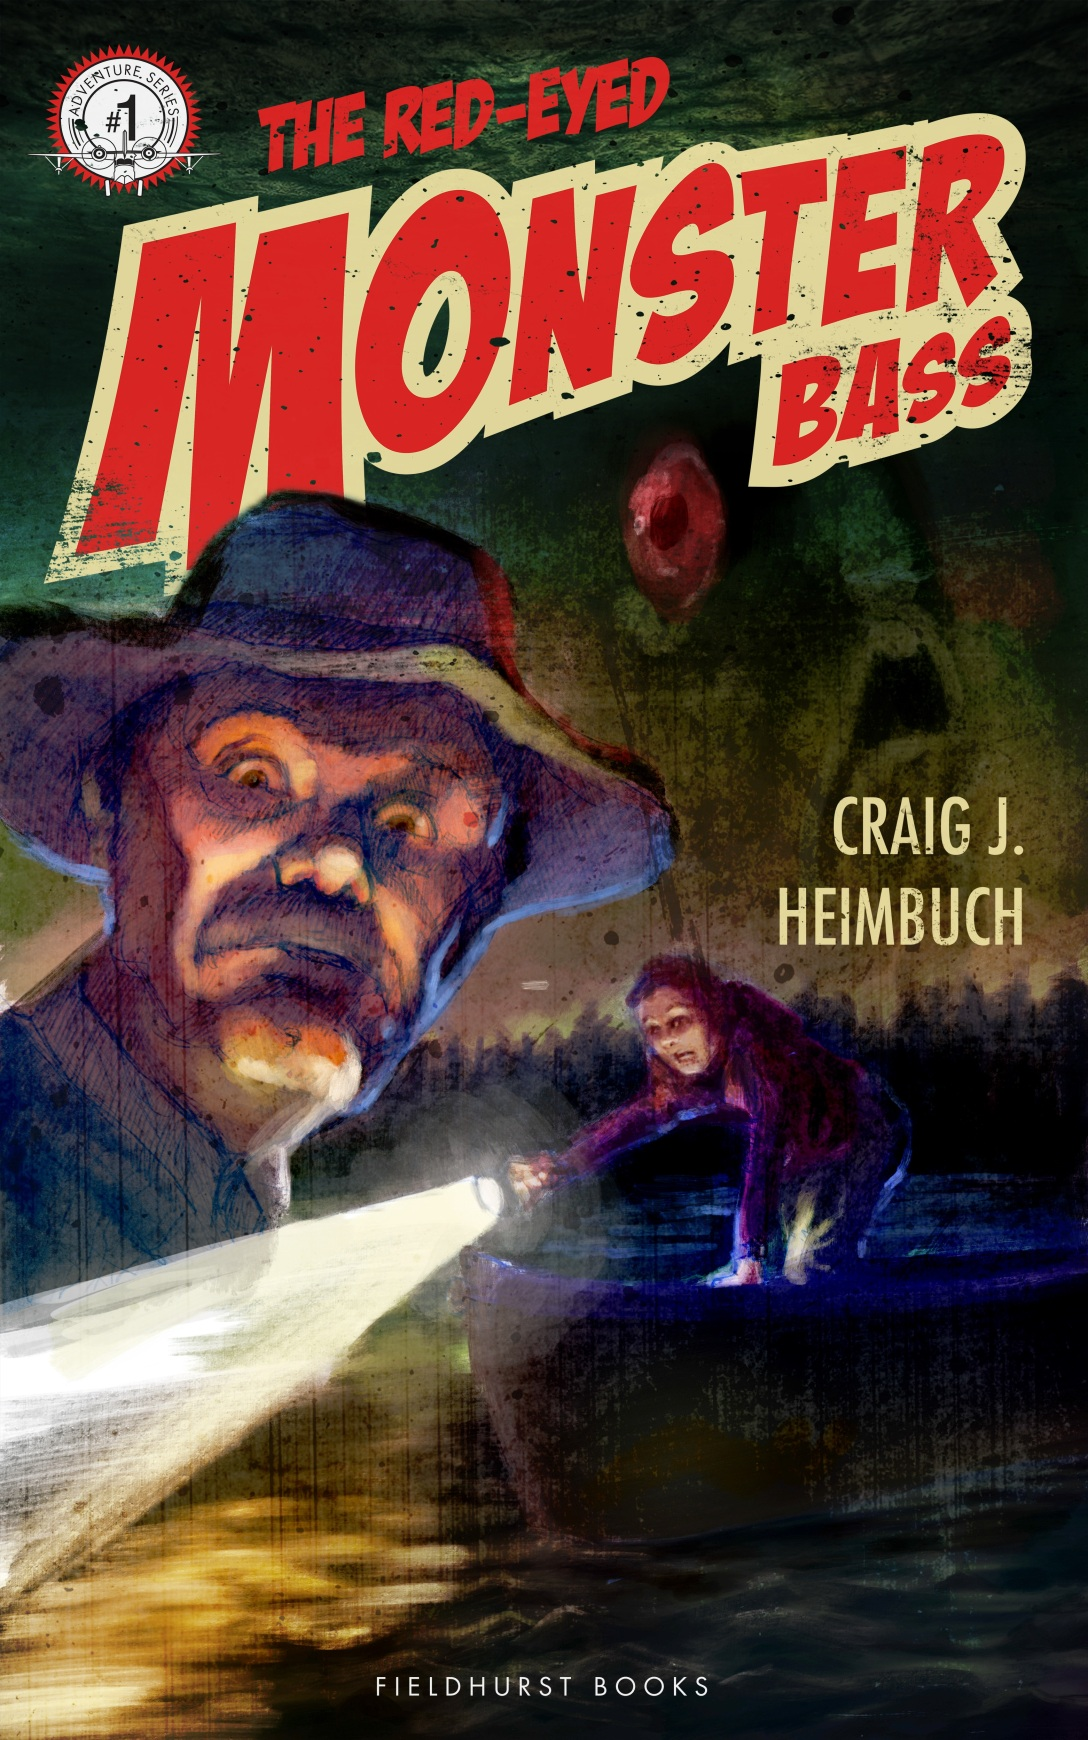 RED-EYED_MONSTER_BASS_cover_hr